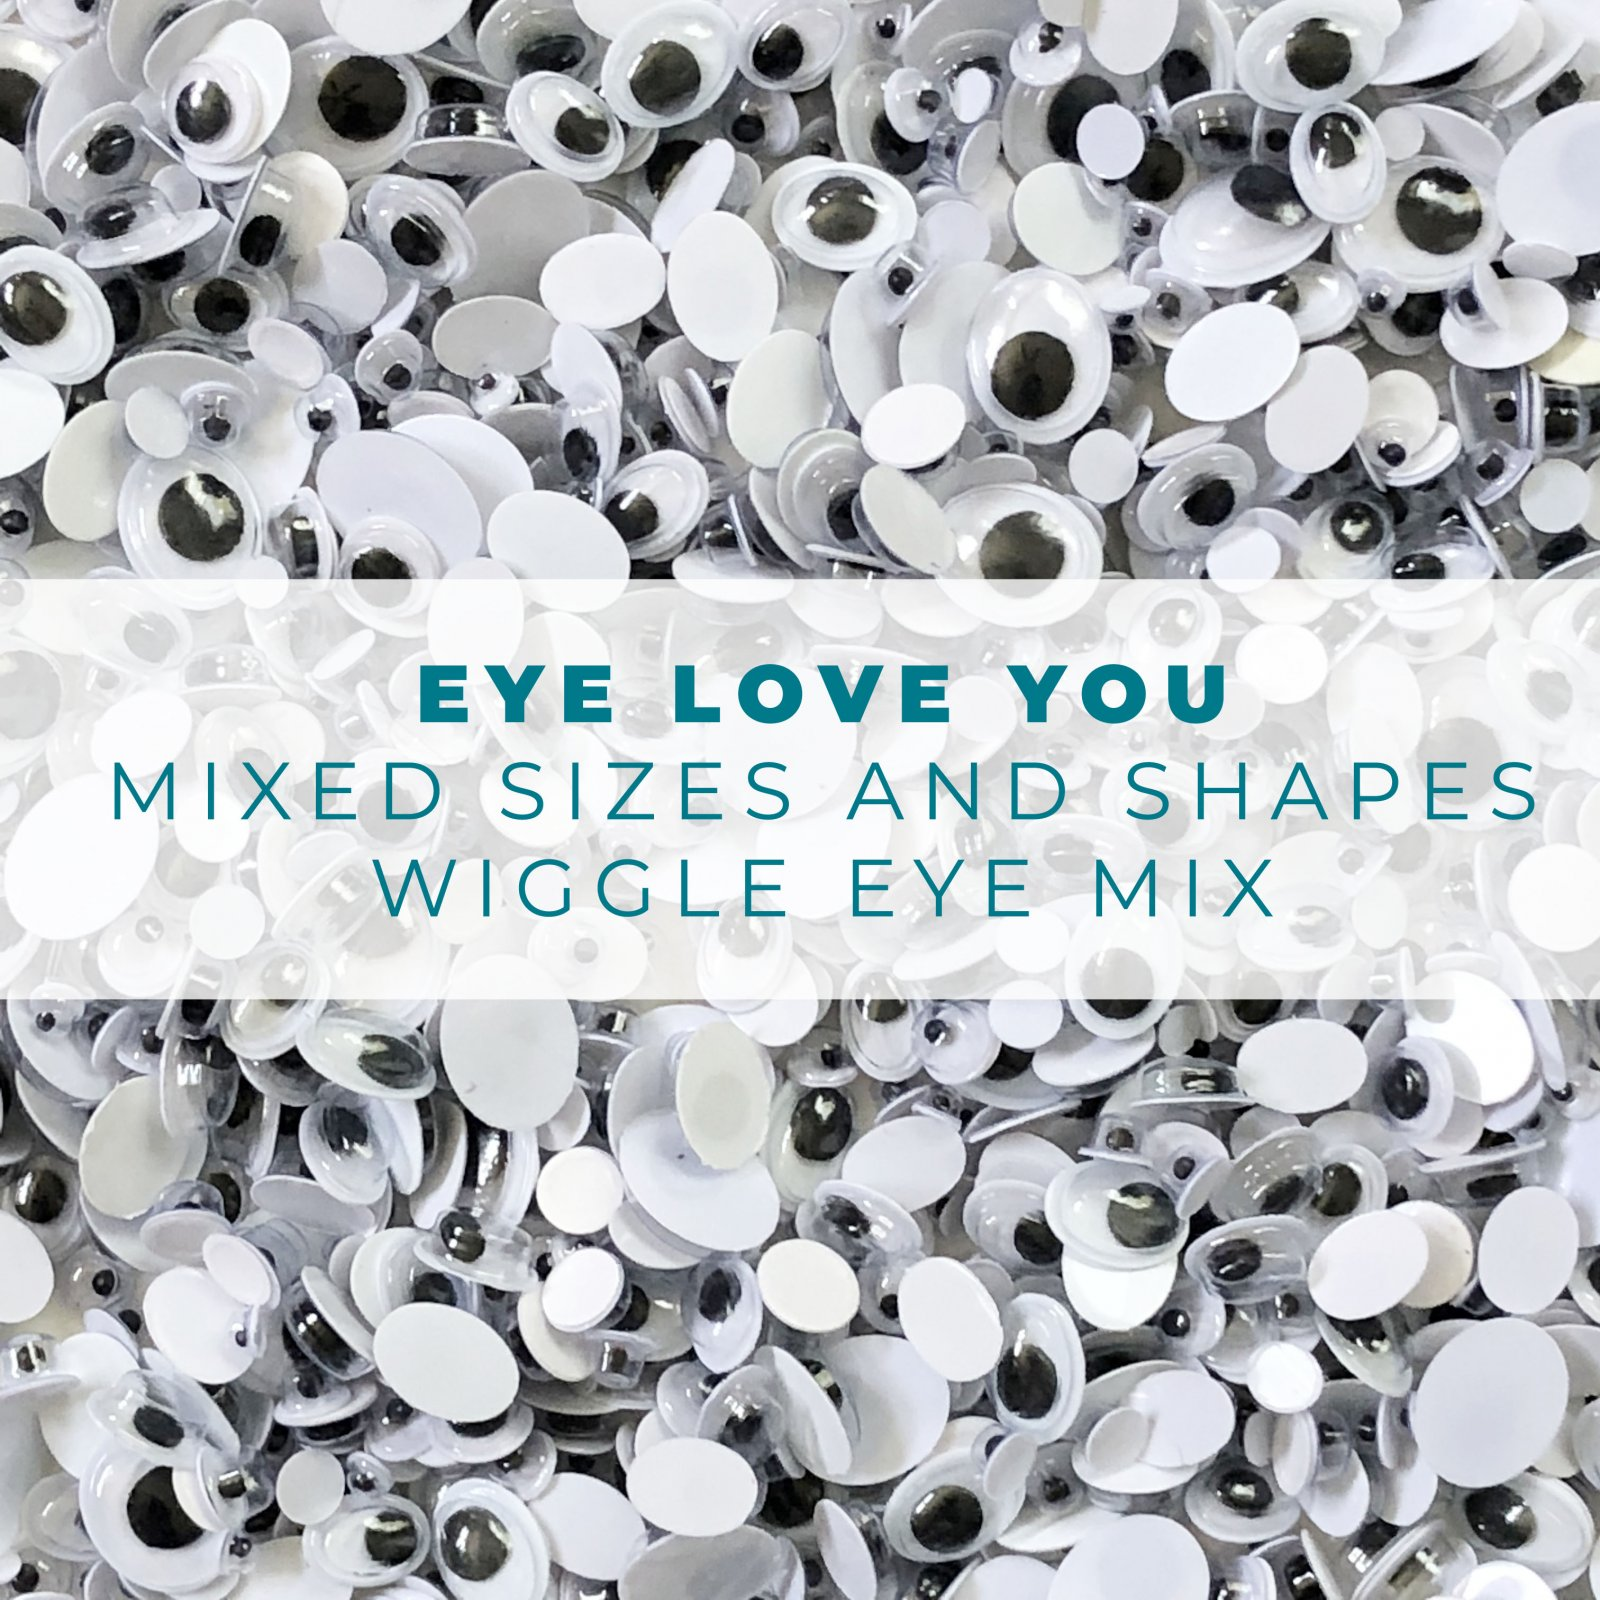 EYE Love You: Mixed sizes and shapes wiggle eye assortment